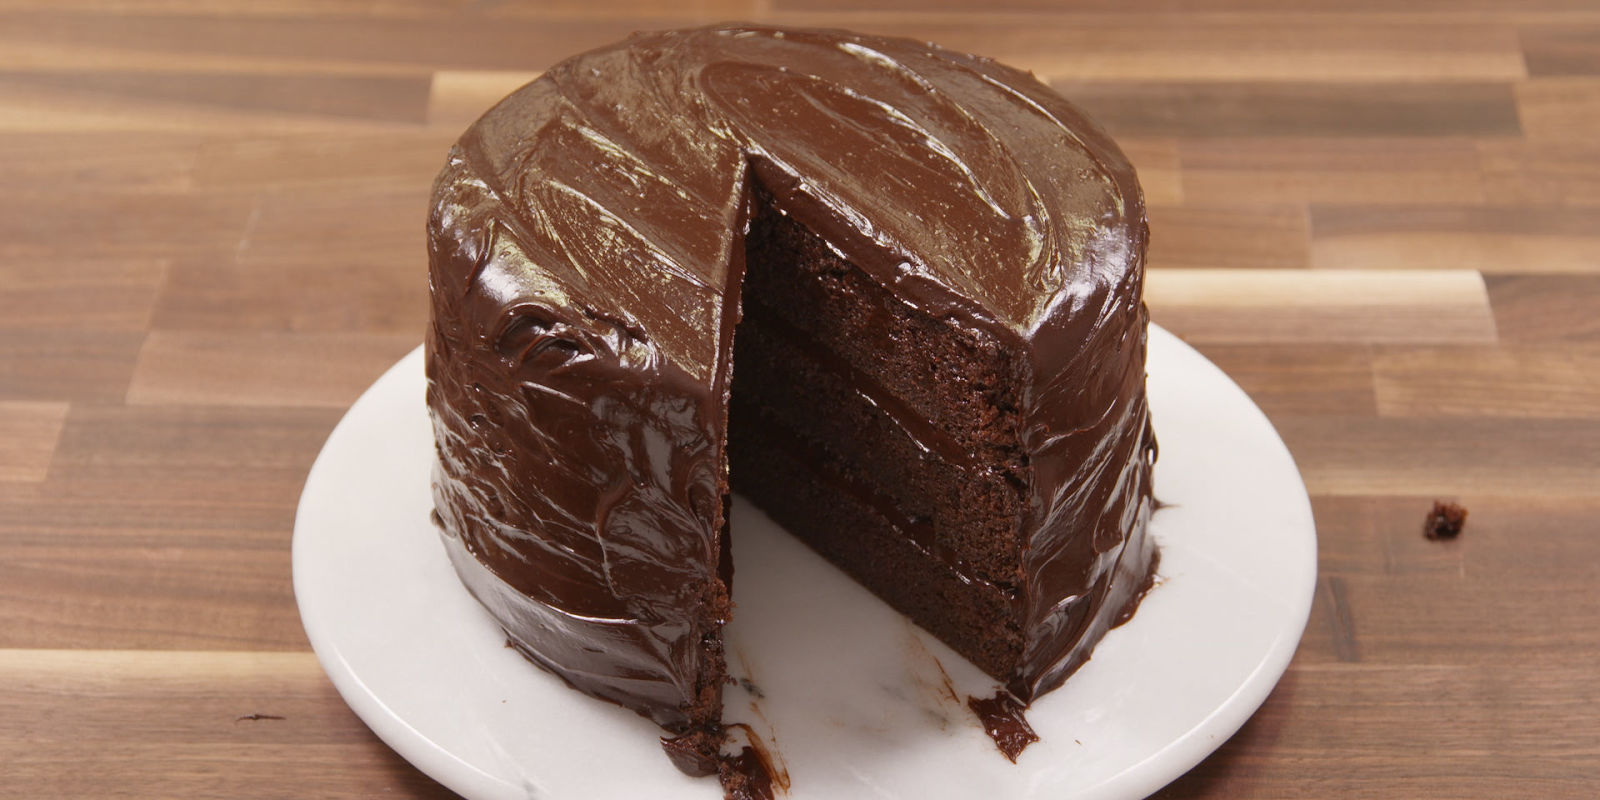 Best Chocolate Fudge Cake Recipe - How To Make Chocolate ...